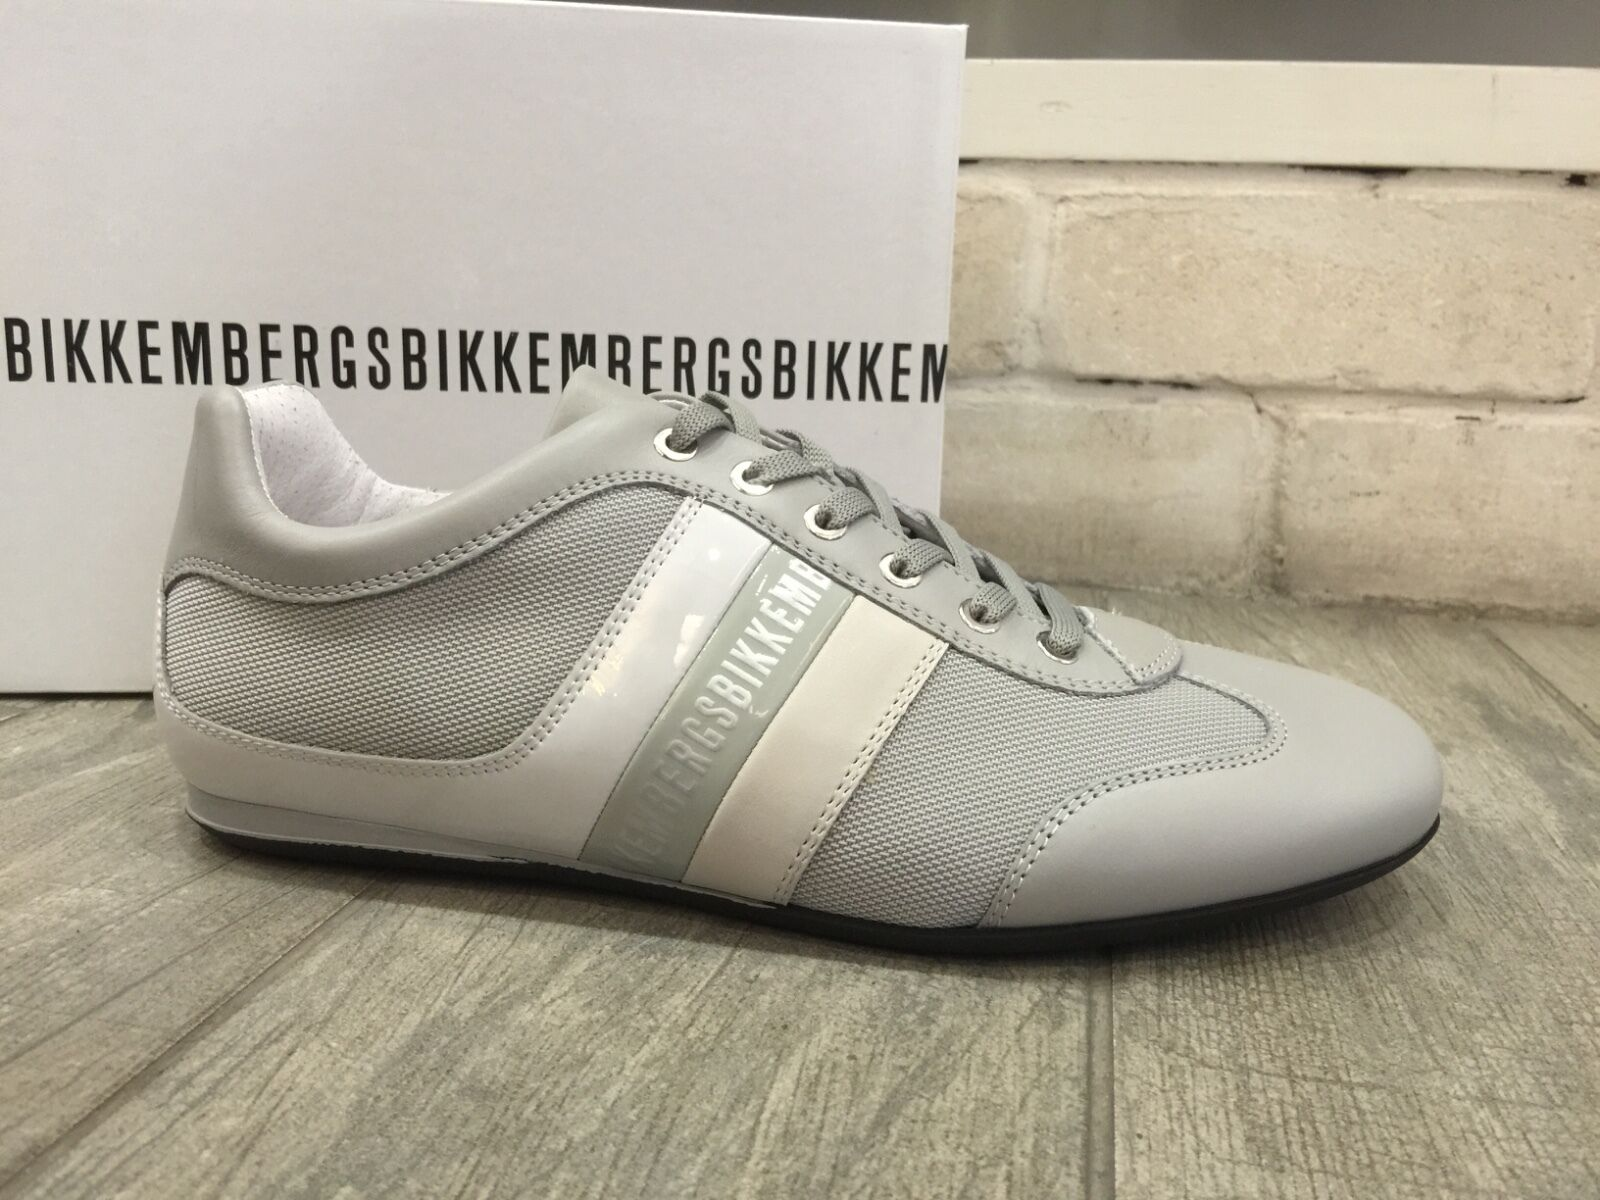 Scarpe casual da uomo  Dirk Bikkembergs uomos Sneakers Shoes Sneakers uomos Leather Trainers Gray BKE106574 New In Box b32455